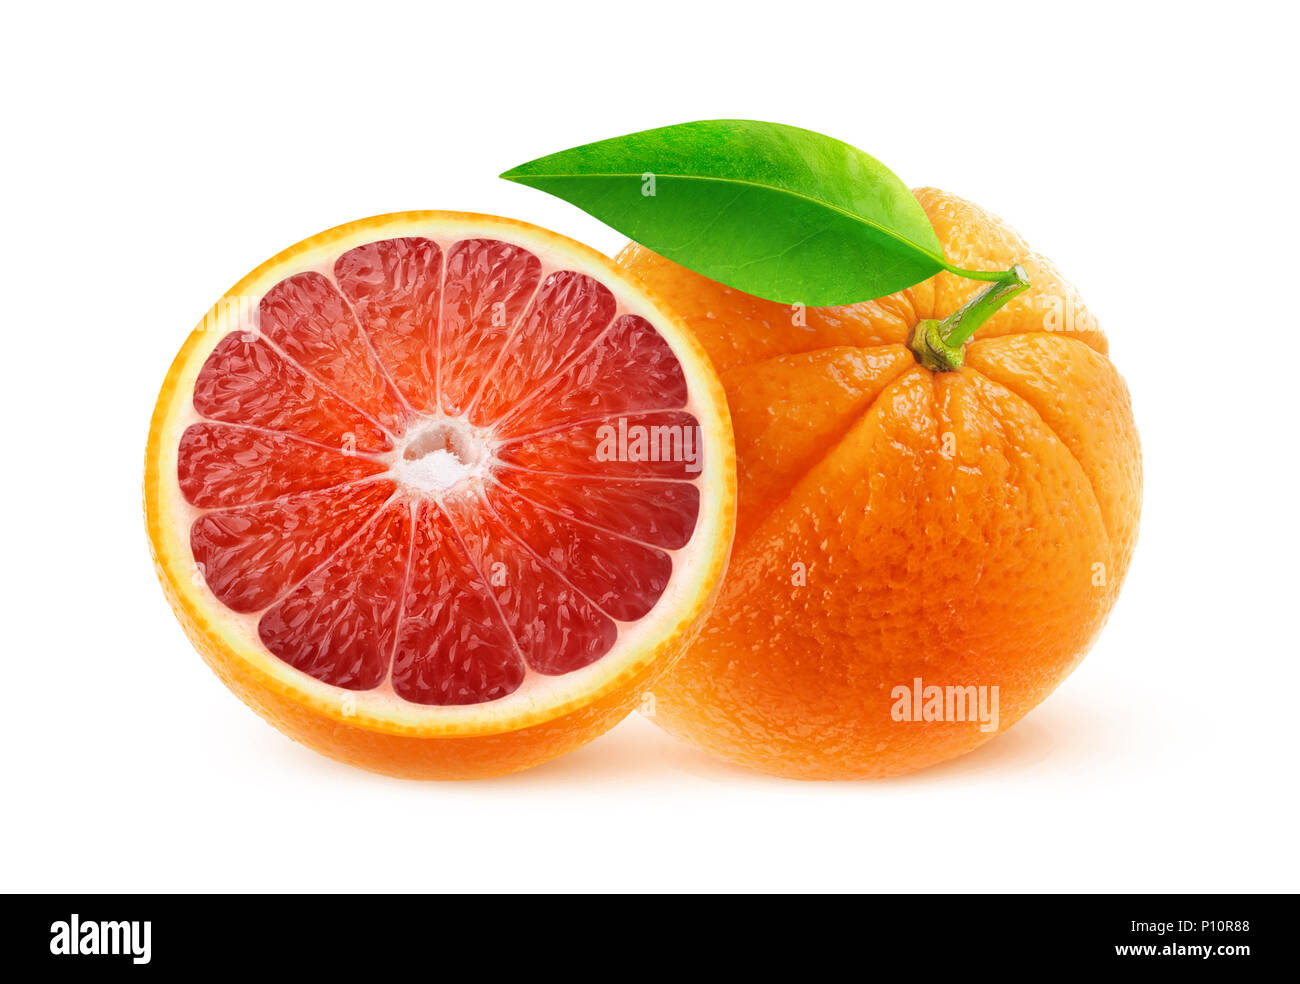 Isolated fruits. One and half blood oranges isolated on white background with clipping path - Stock Image